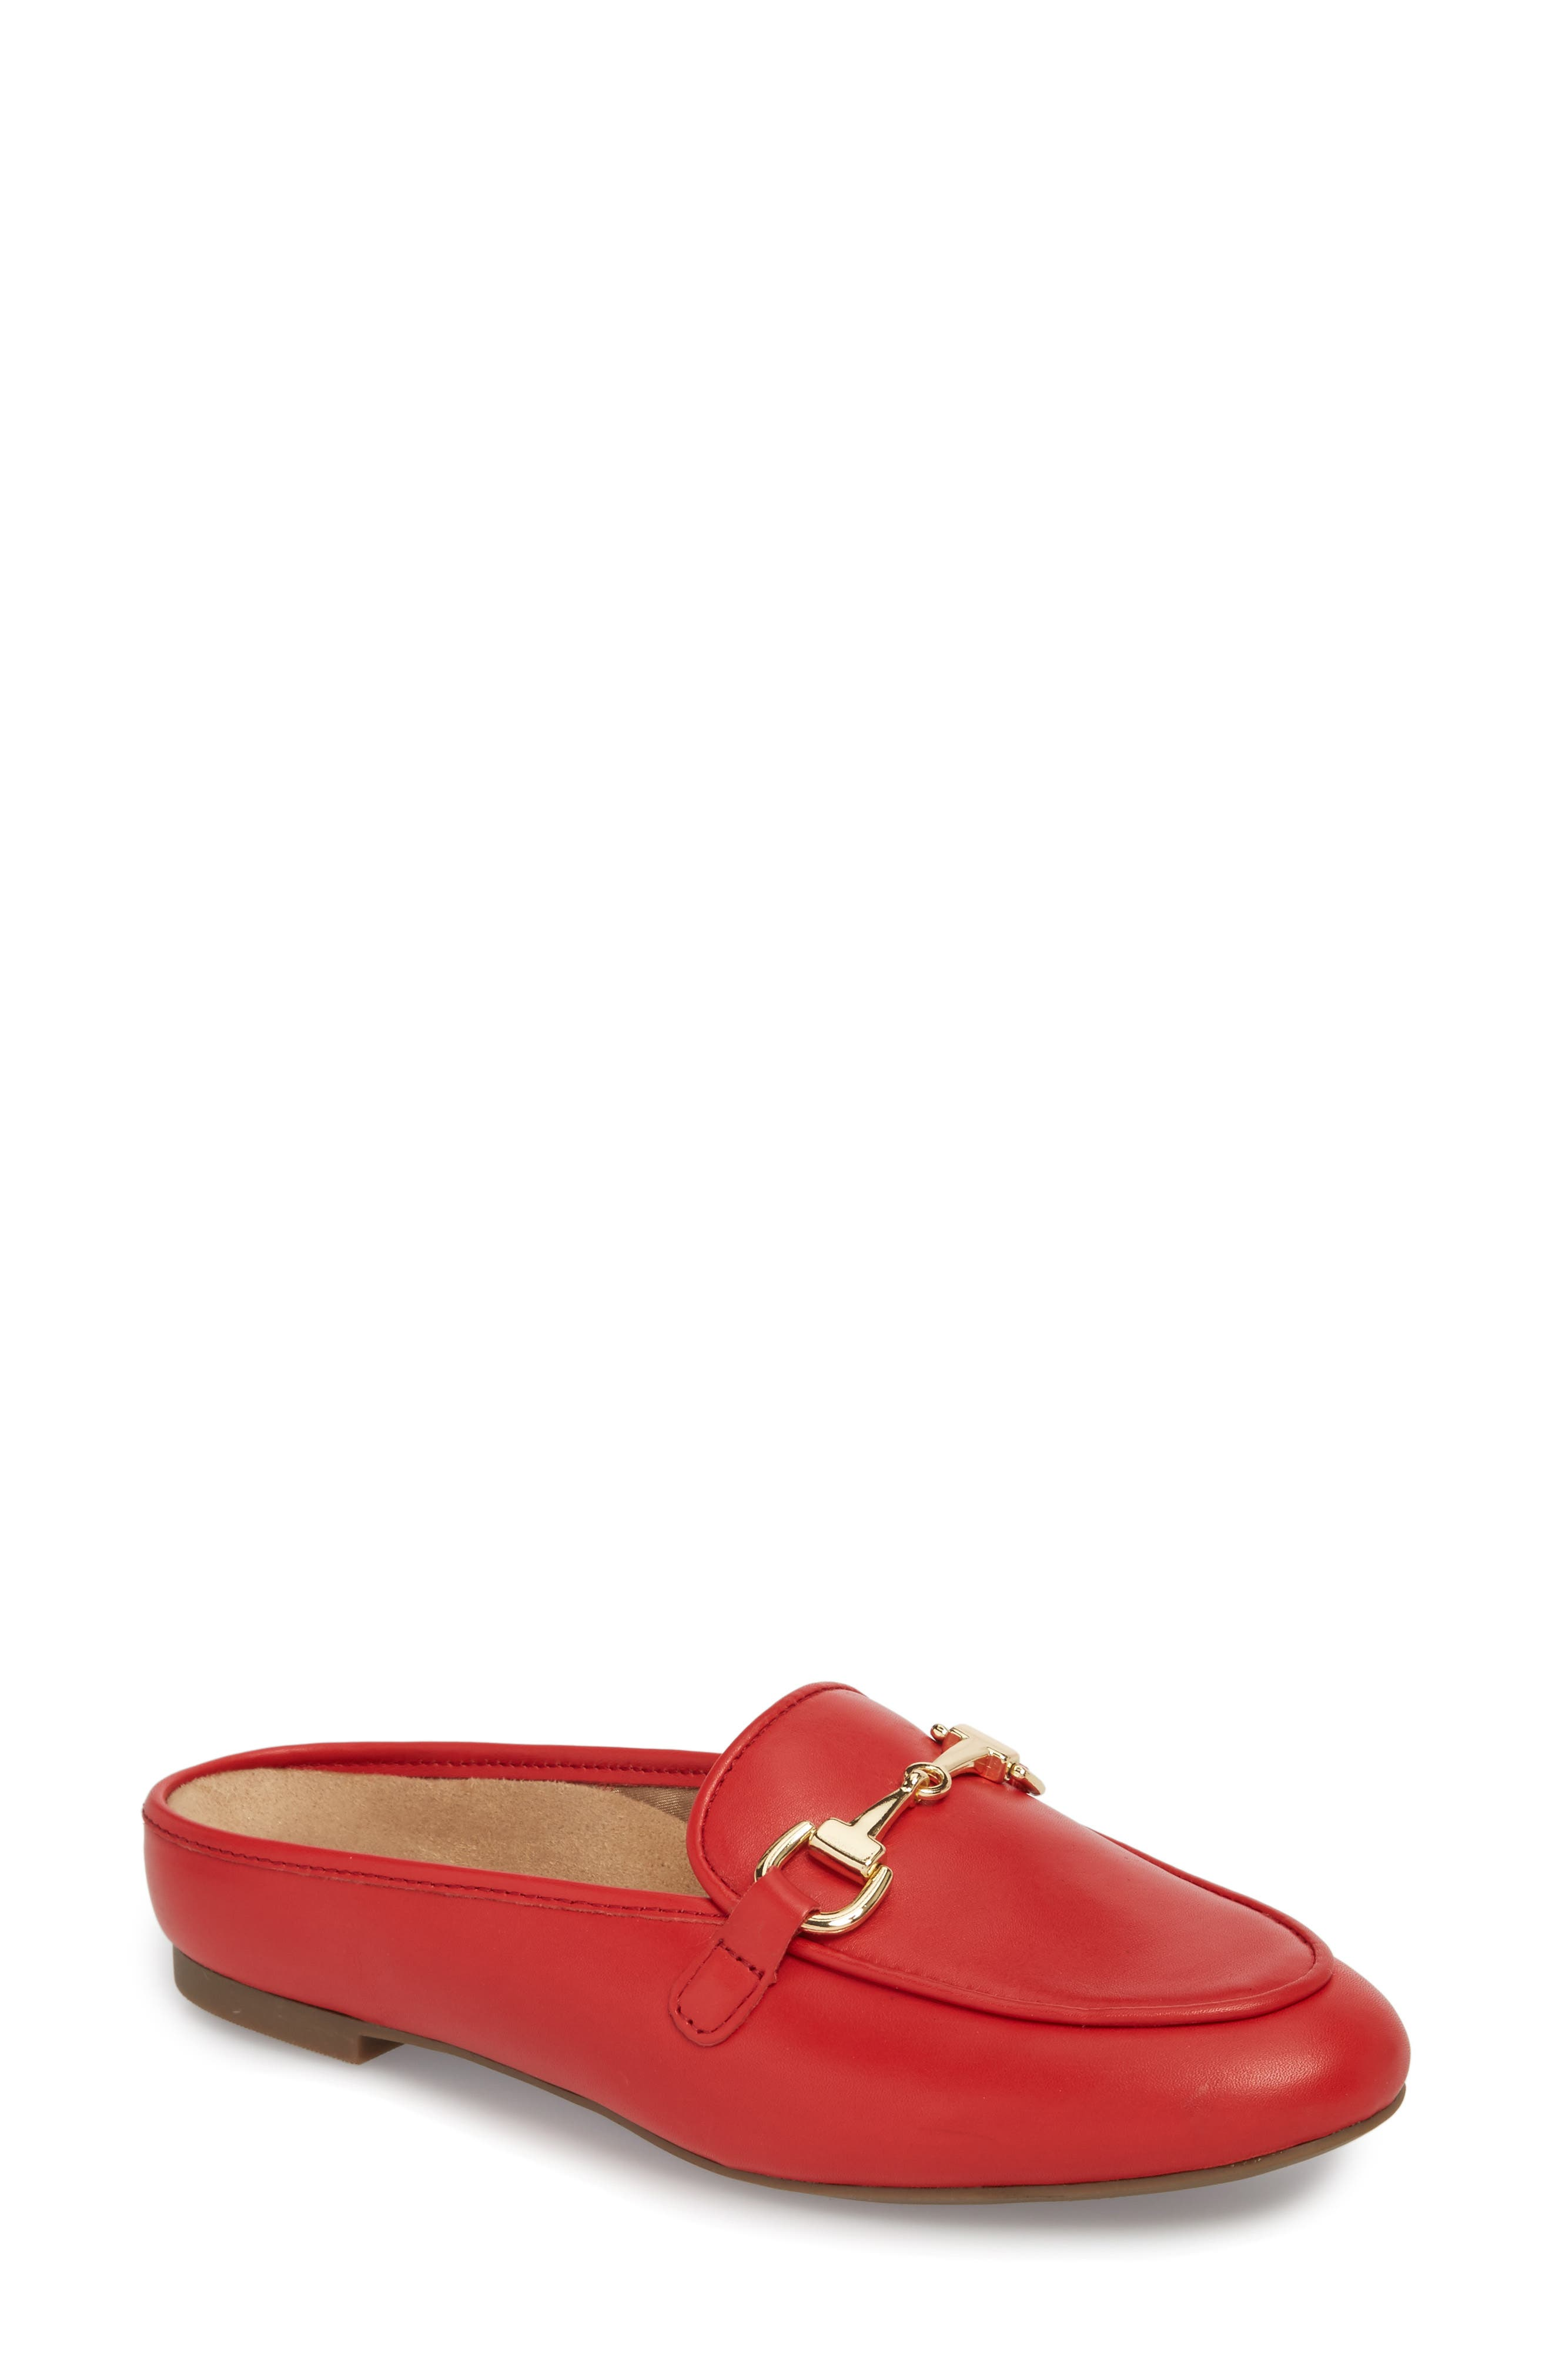 Adeline Mule,                             Main thumbnail 1, color,                             Red Leather